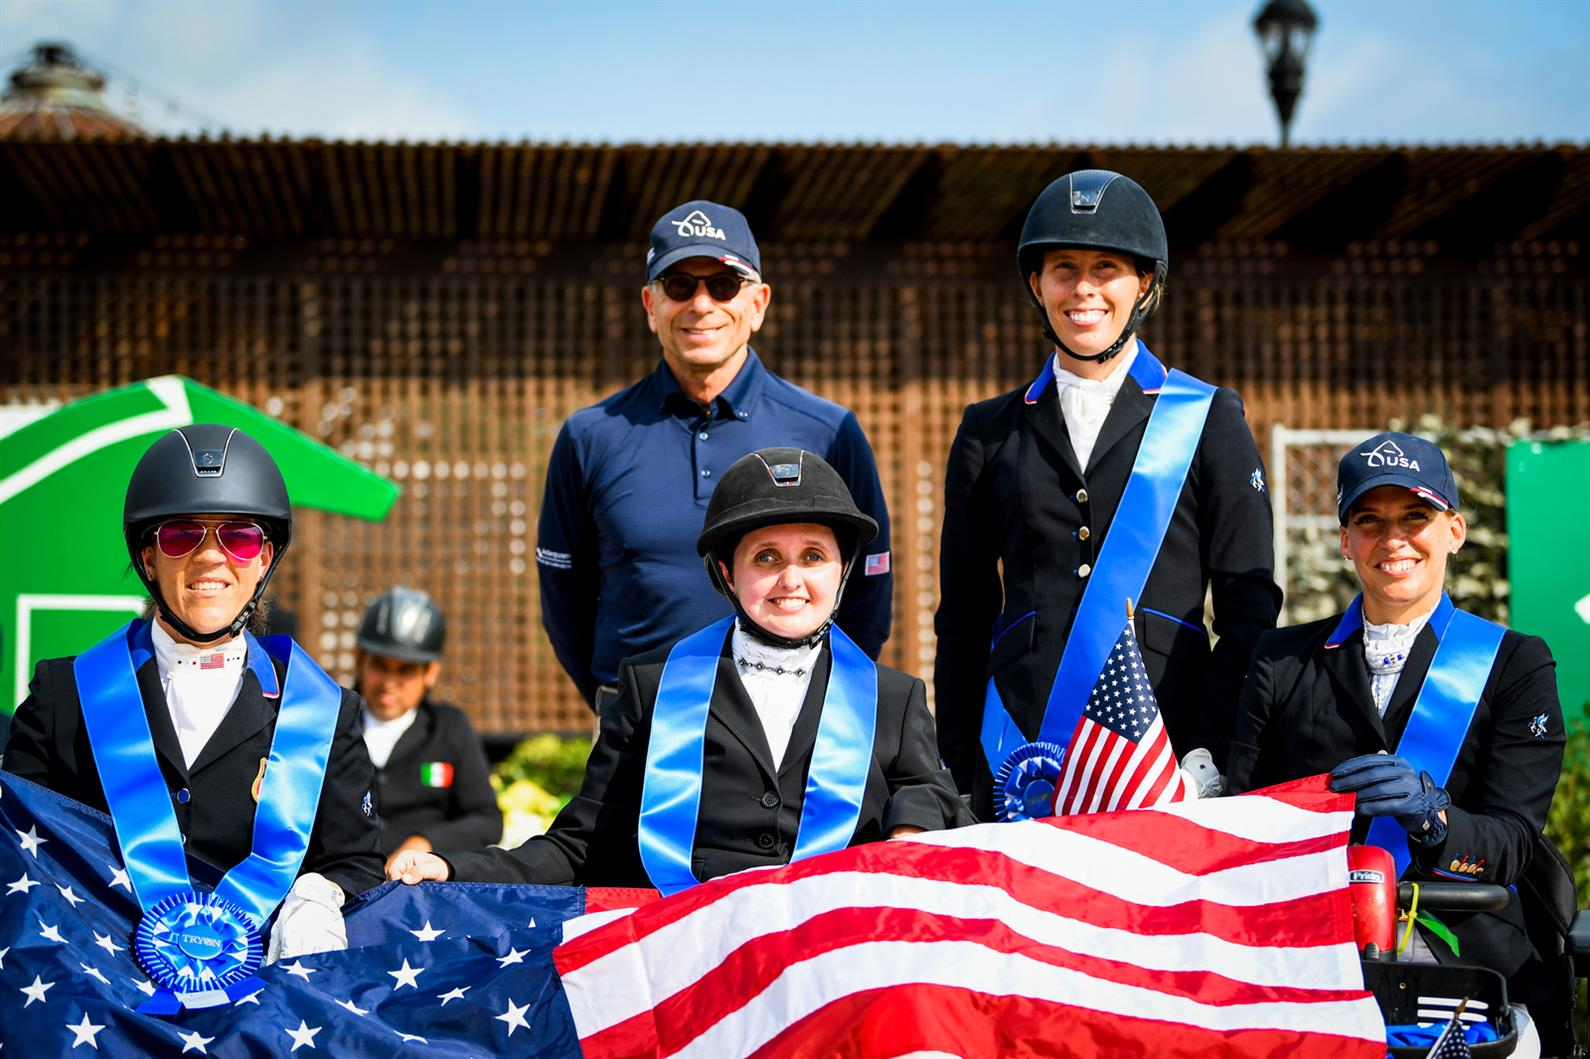 Michel Assouline with Roxanne Trunnell, Sydney Collier, Kate Shoemaker, and Rebecca Hart at the Adequan/USEF Para Dressage National Championship